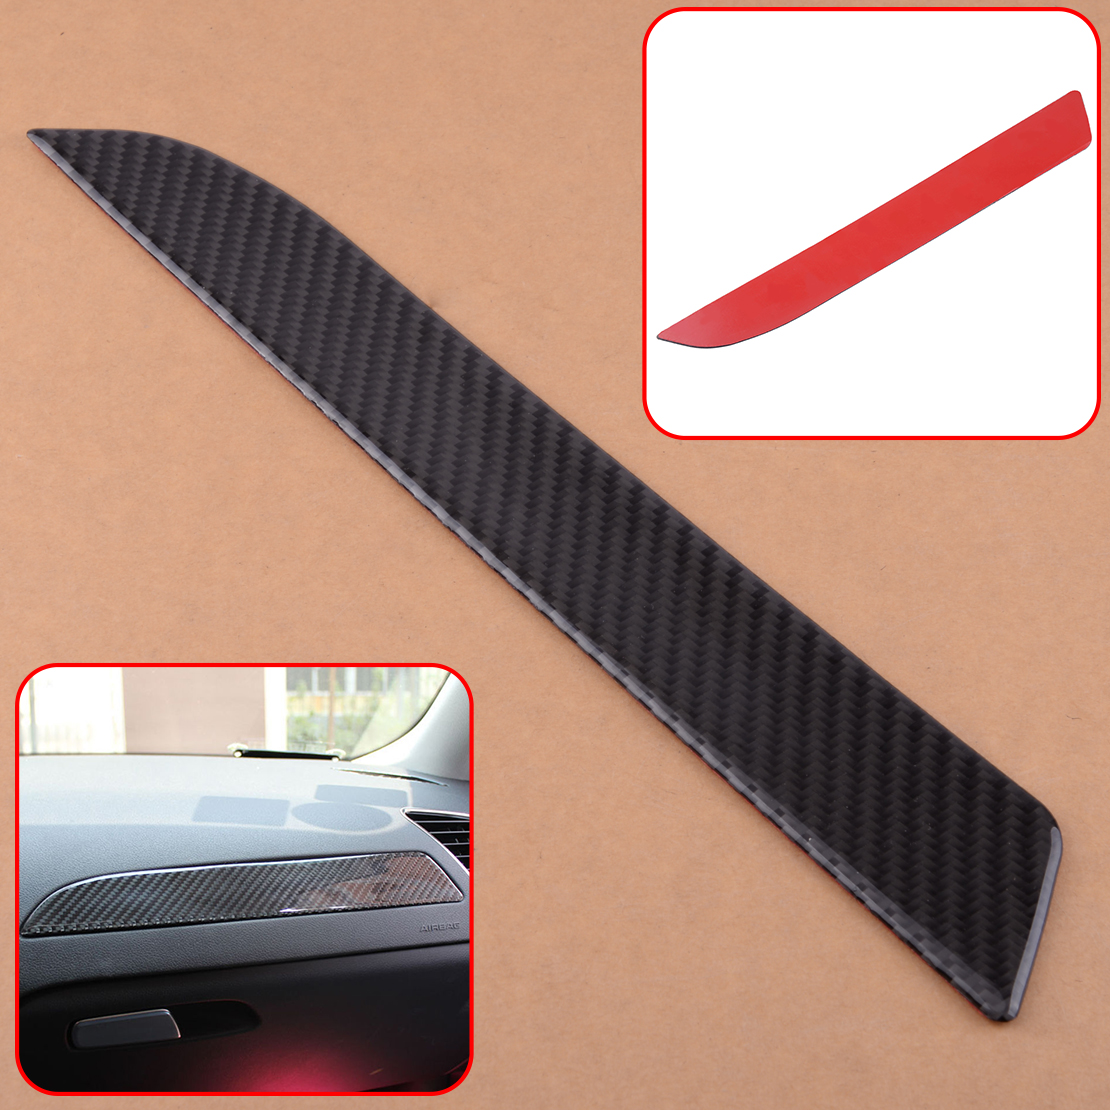 DWCX Carbon Fiber Car Interior Co-pilot Console Panel Glove Box Cover Trim for Audi A4 B8 2009 2010 2011 2012 2013 2014 2015 image